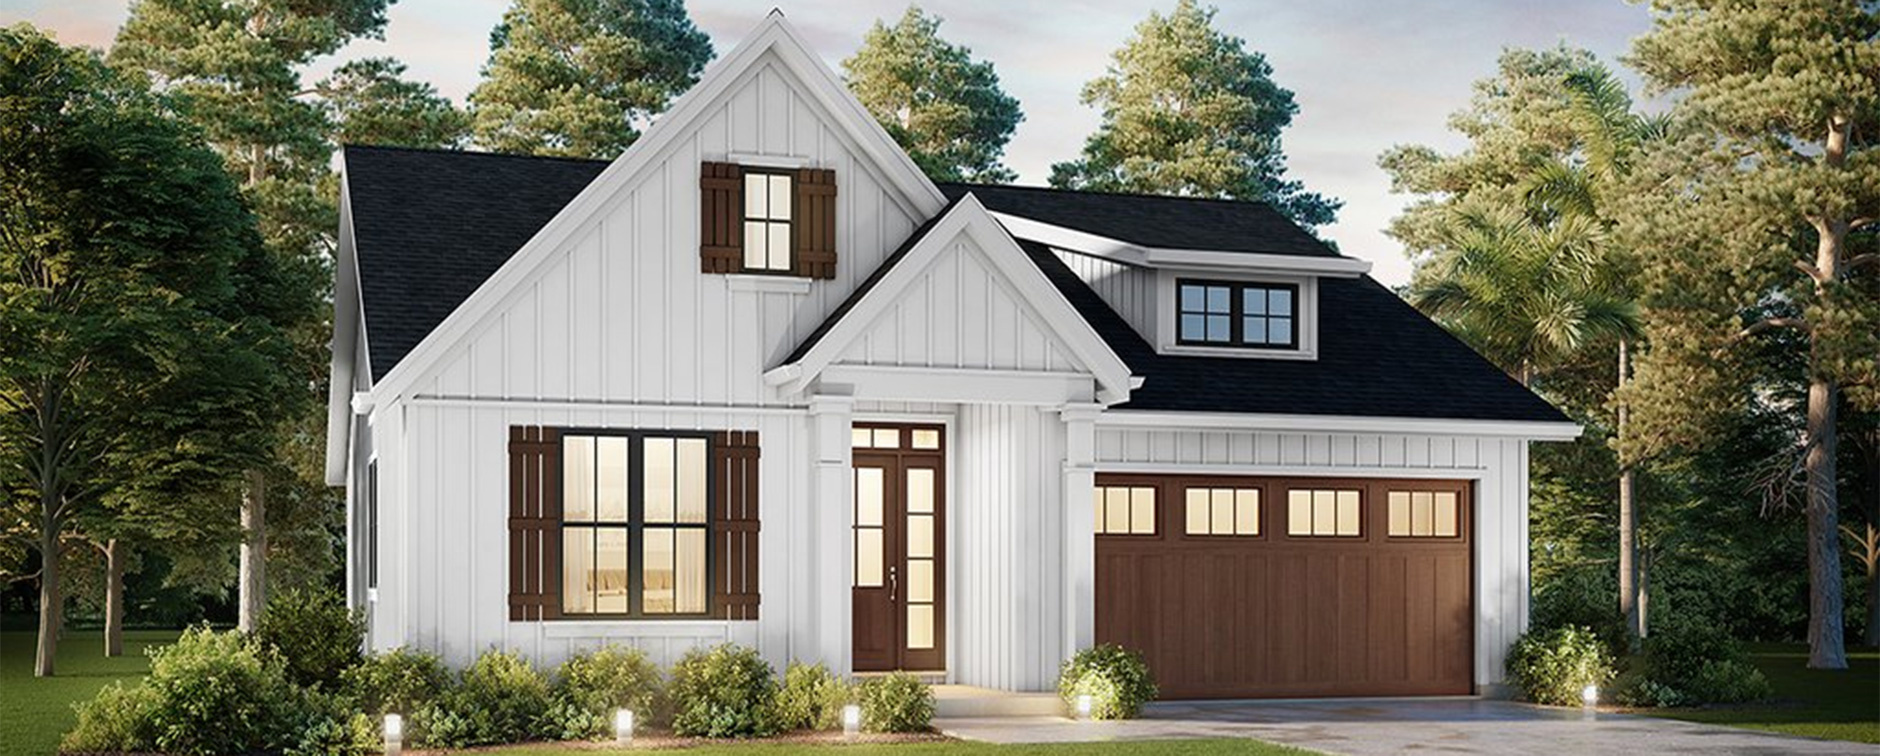 Browse Small House Plans and Simple Floor Plans